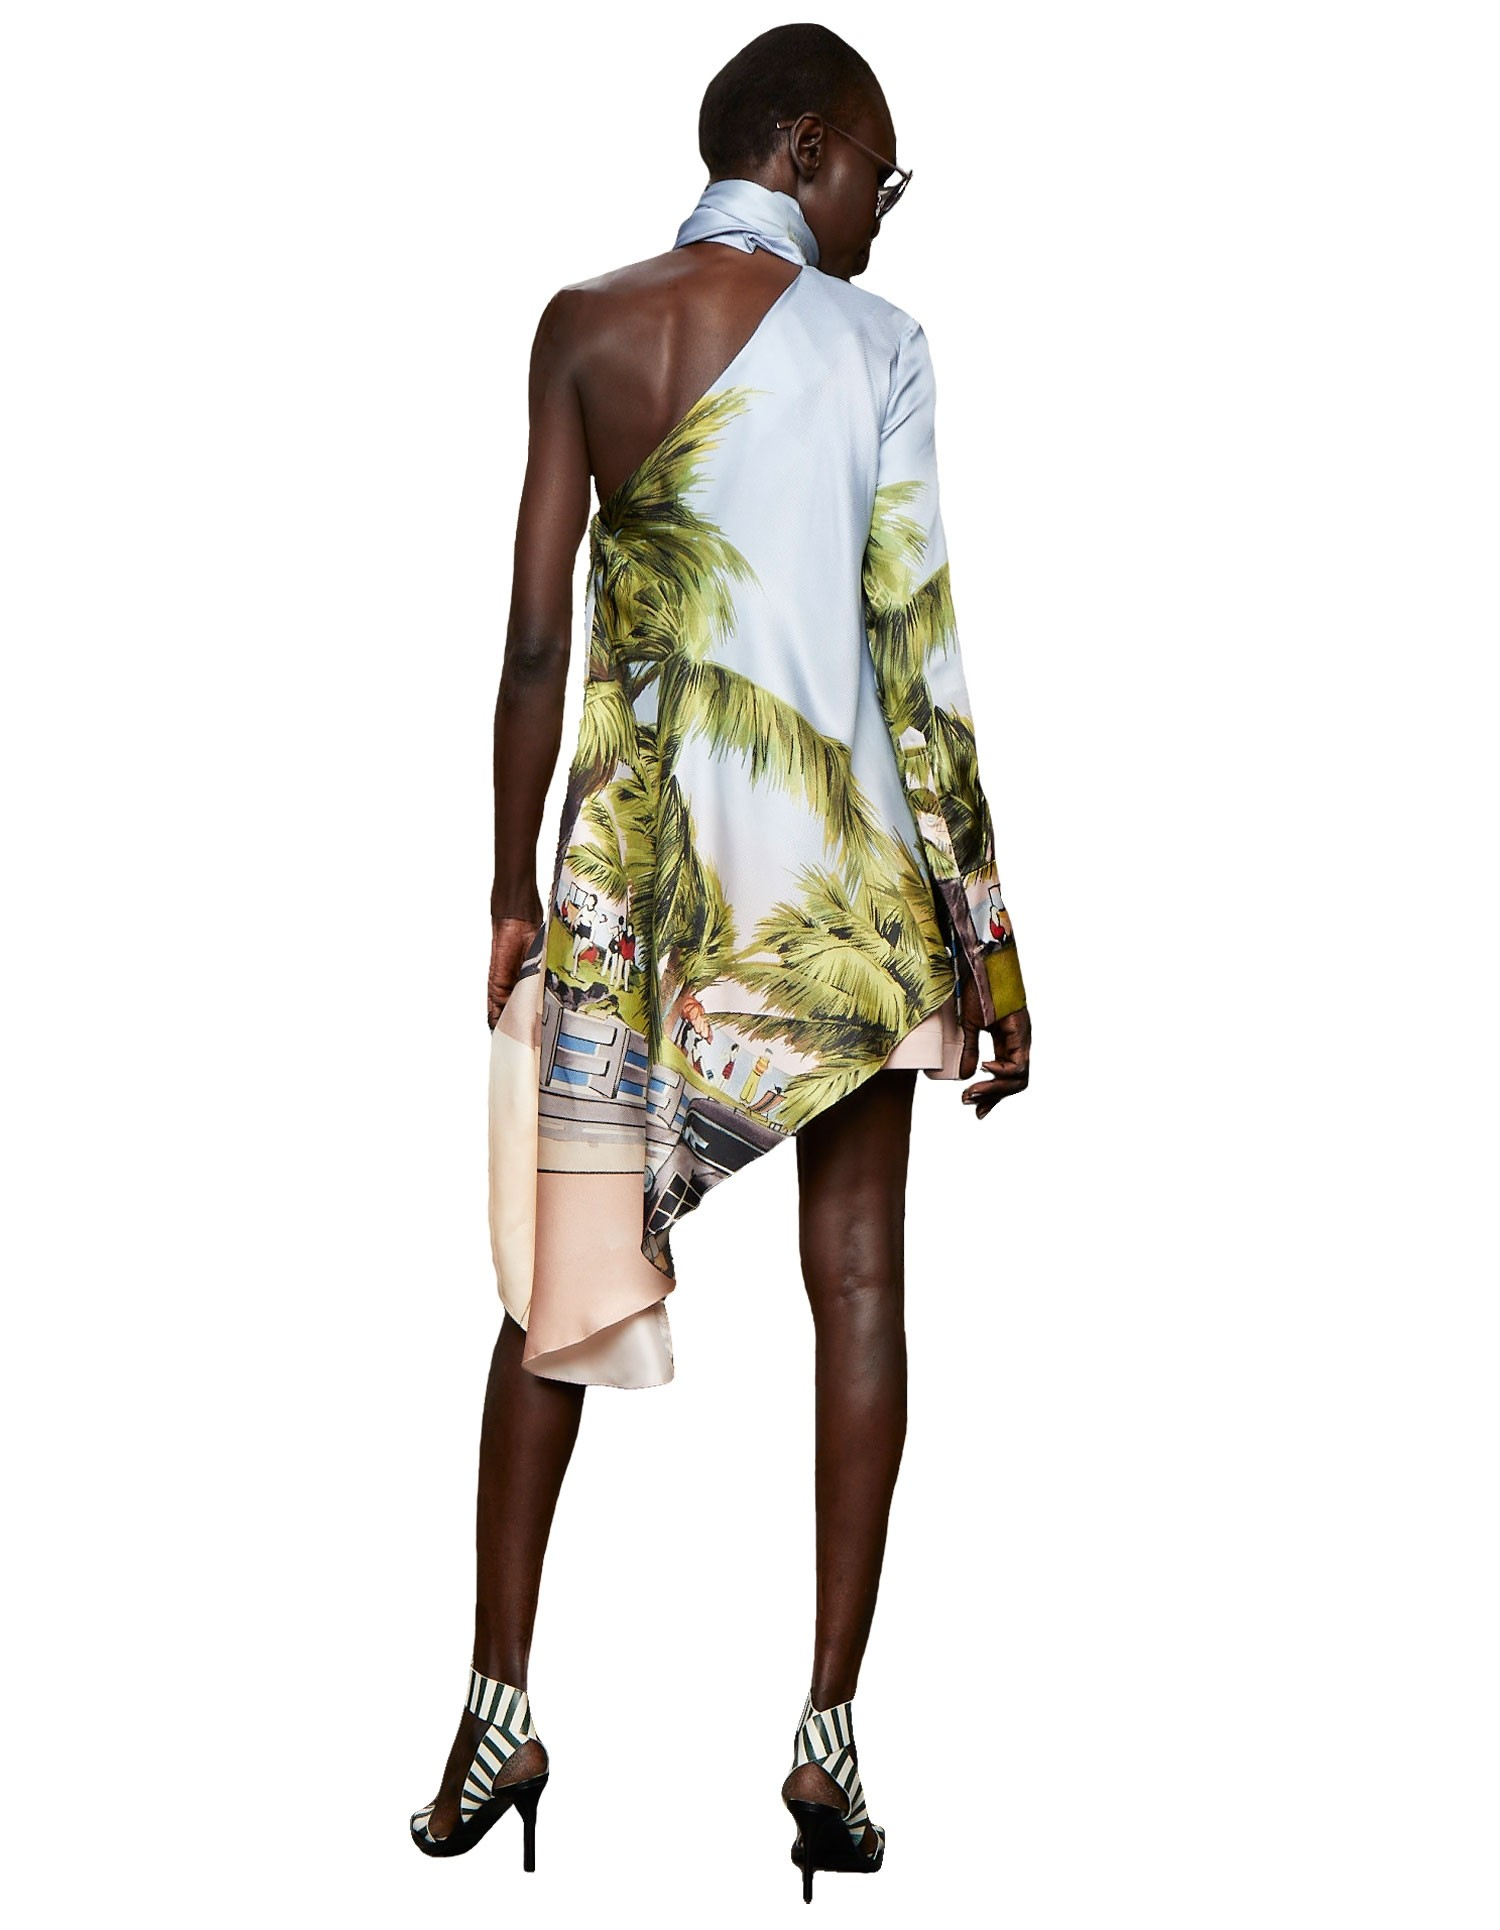 Monse Women's One-Shoulder Scenic Print Top with High Scarf Neckline